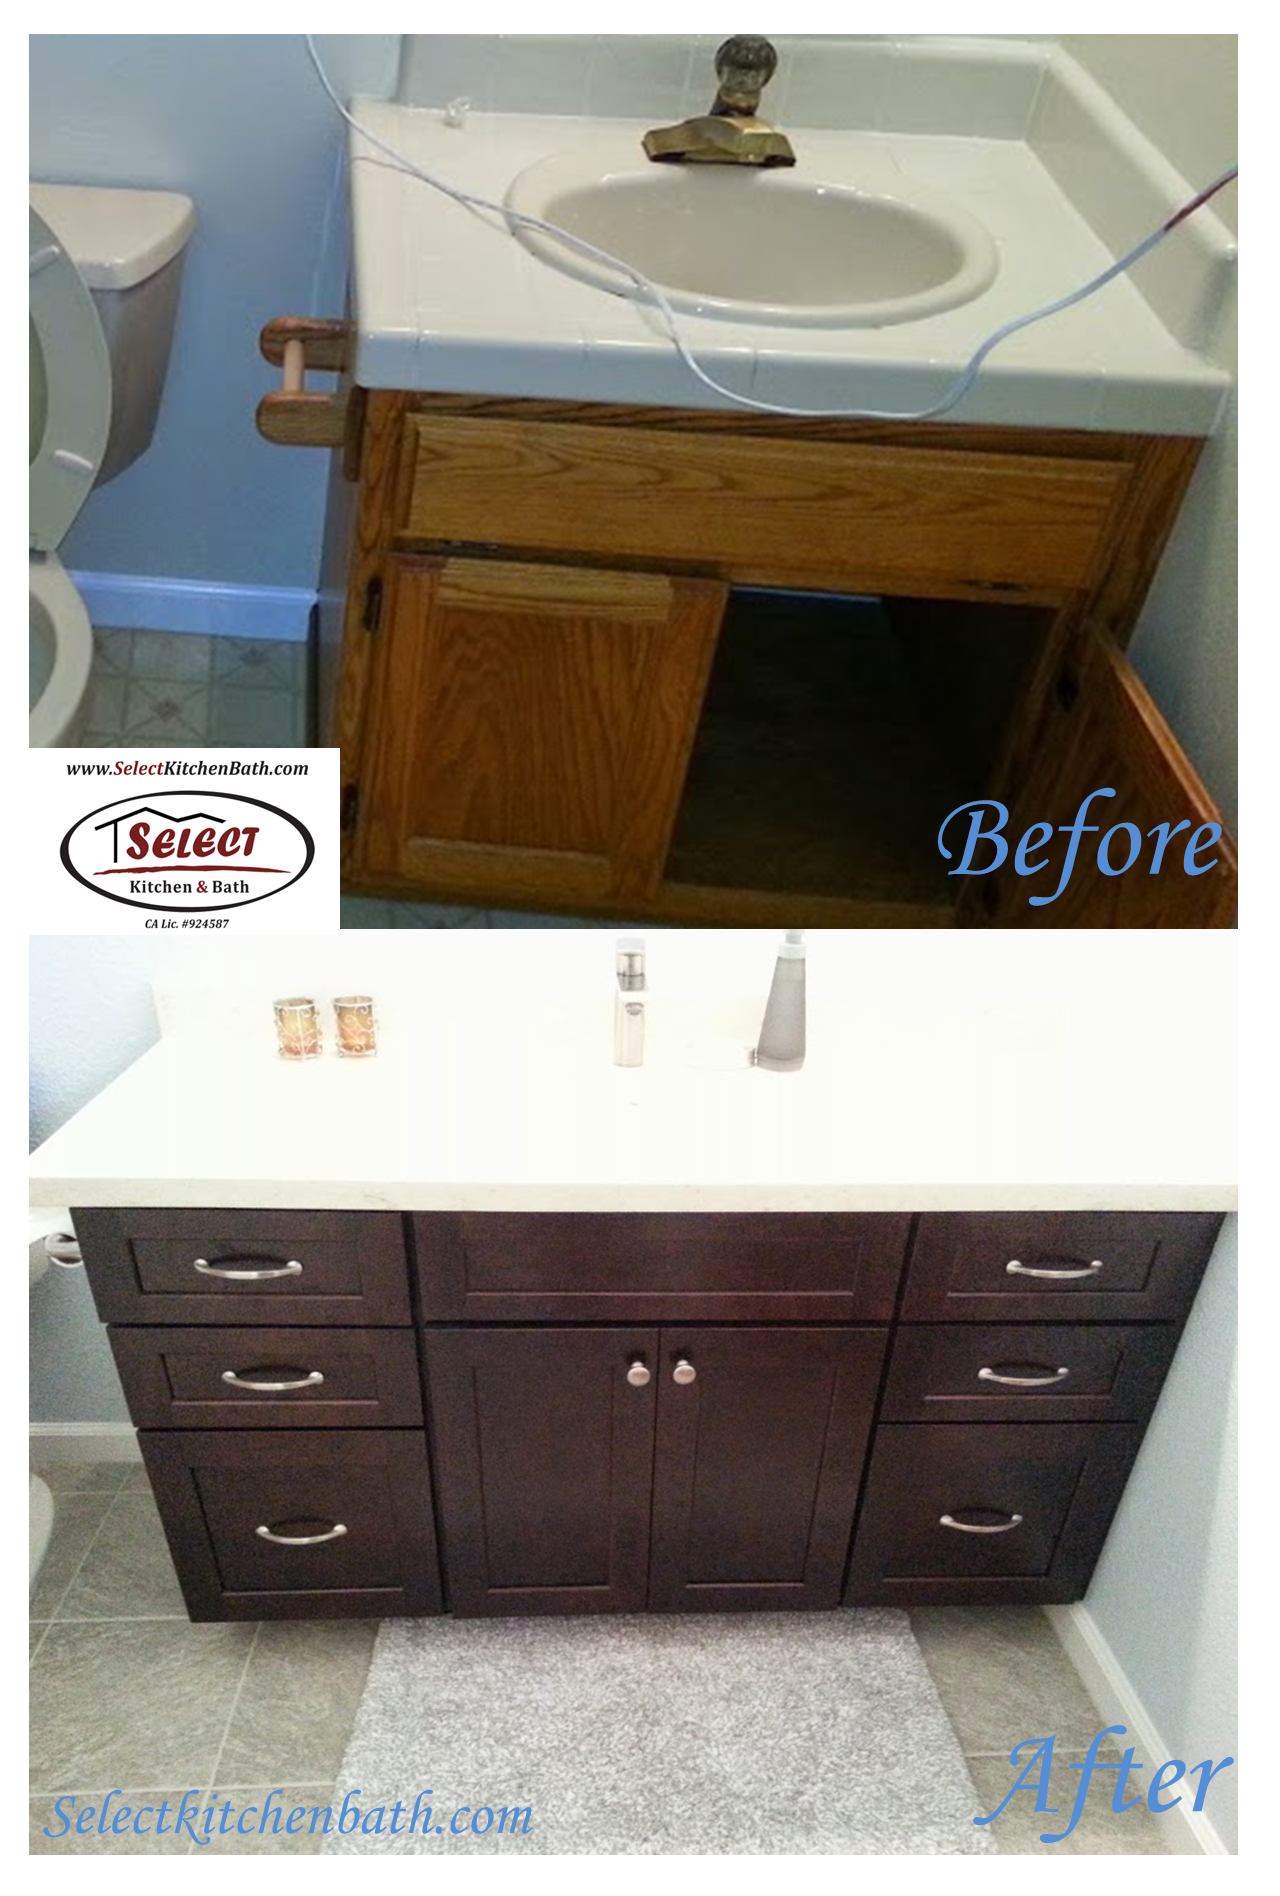 Superieur Before And After Vanity Cabinets And Top Select Kitchen U0026 Bath   Roseville  CA